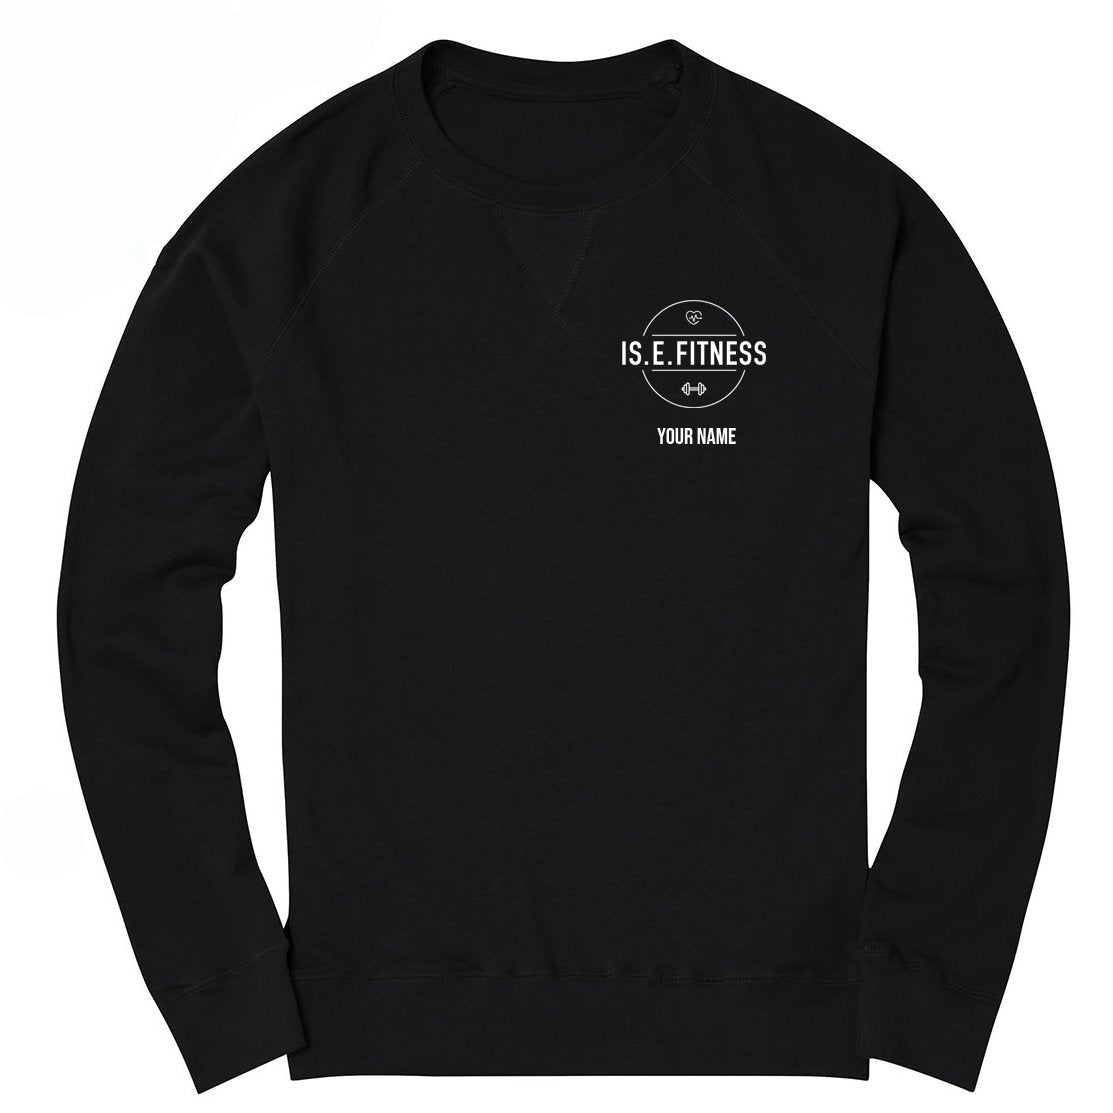 Sweatshirt - IS.E.FITNESS Black Sweatshirt